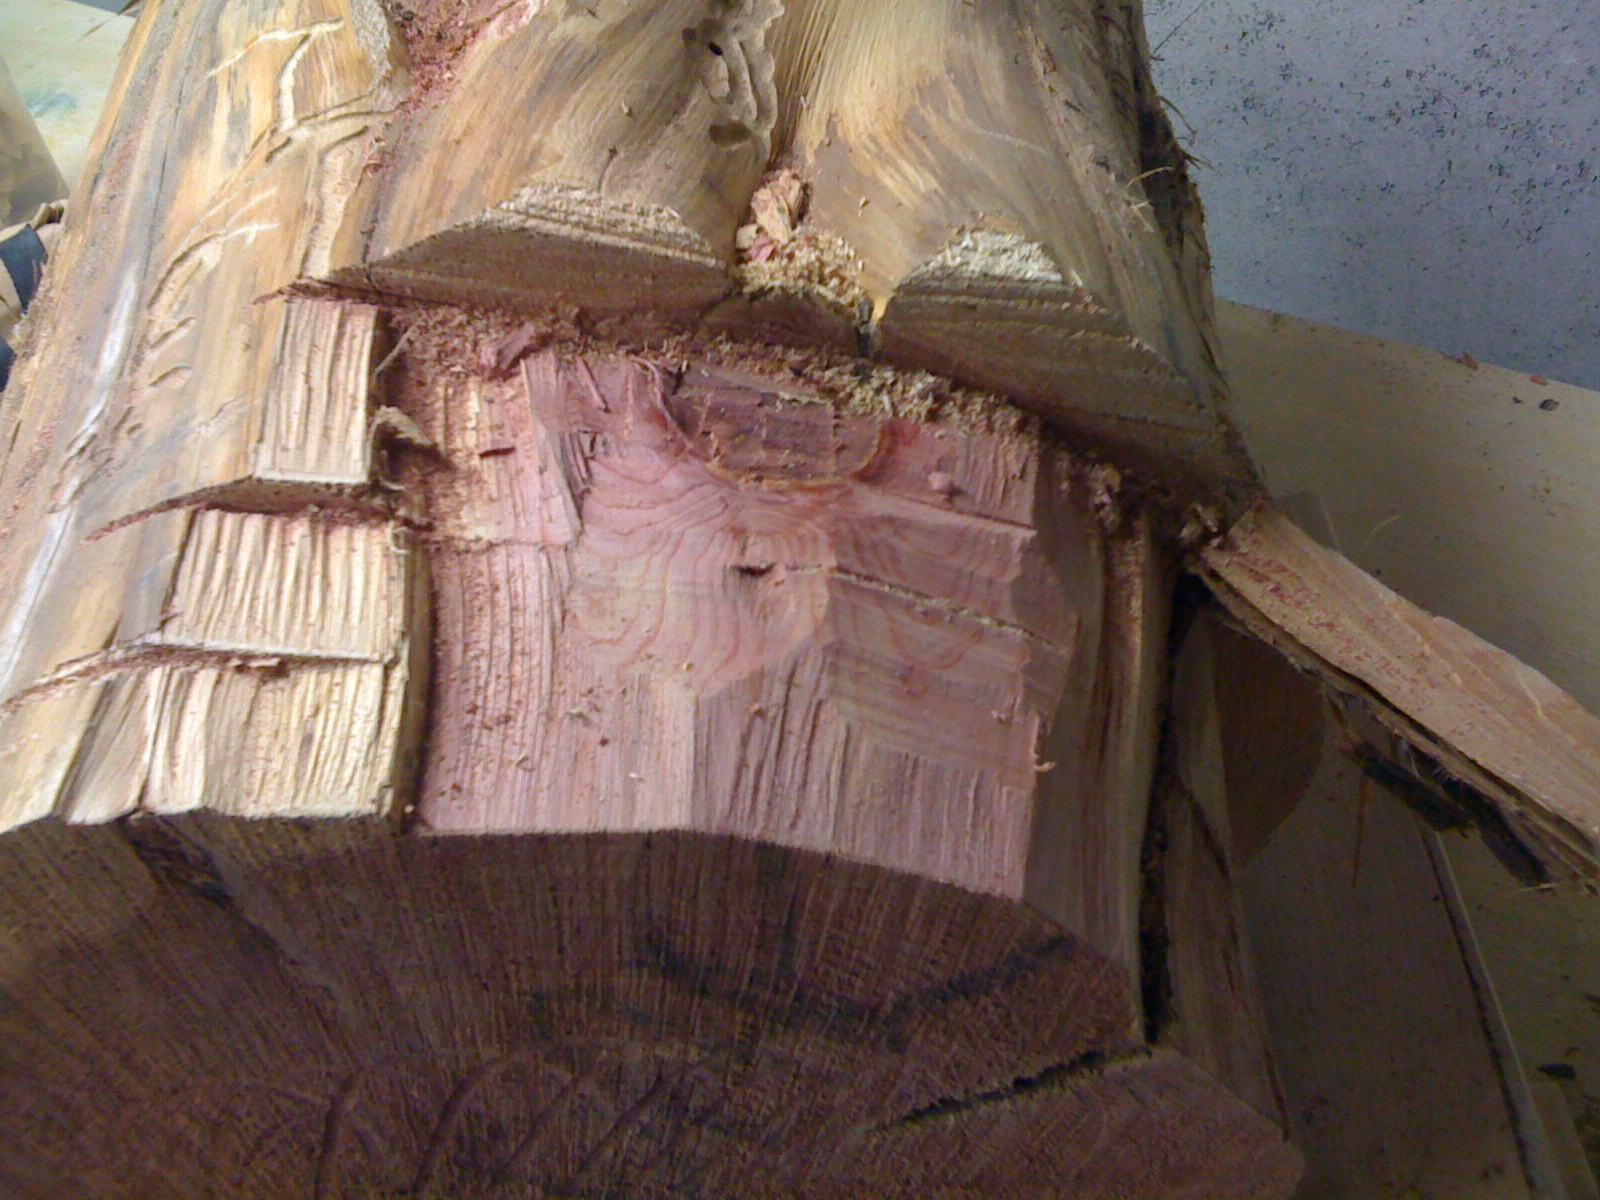 Section of cedar log